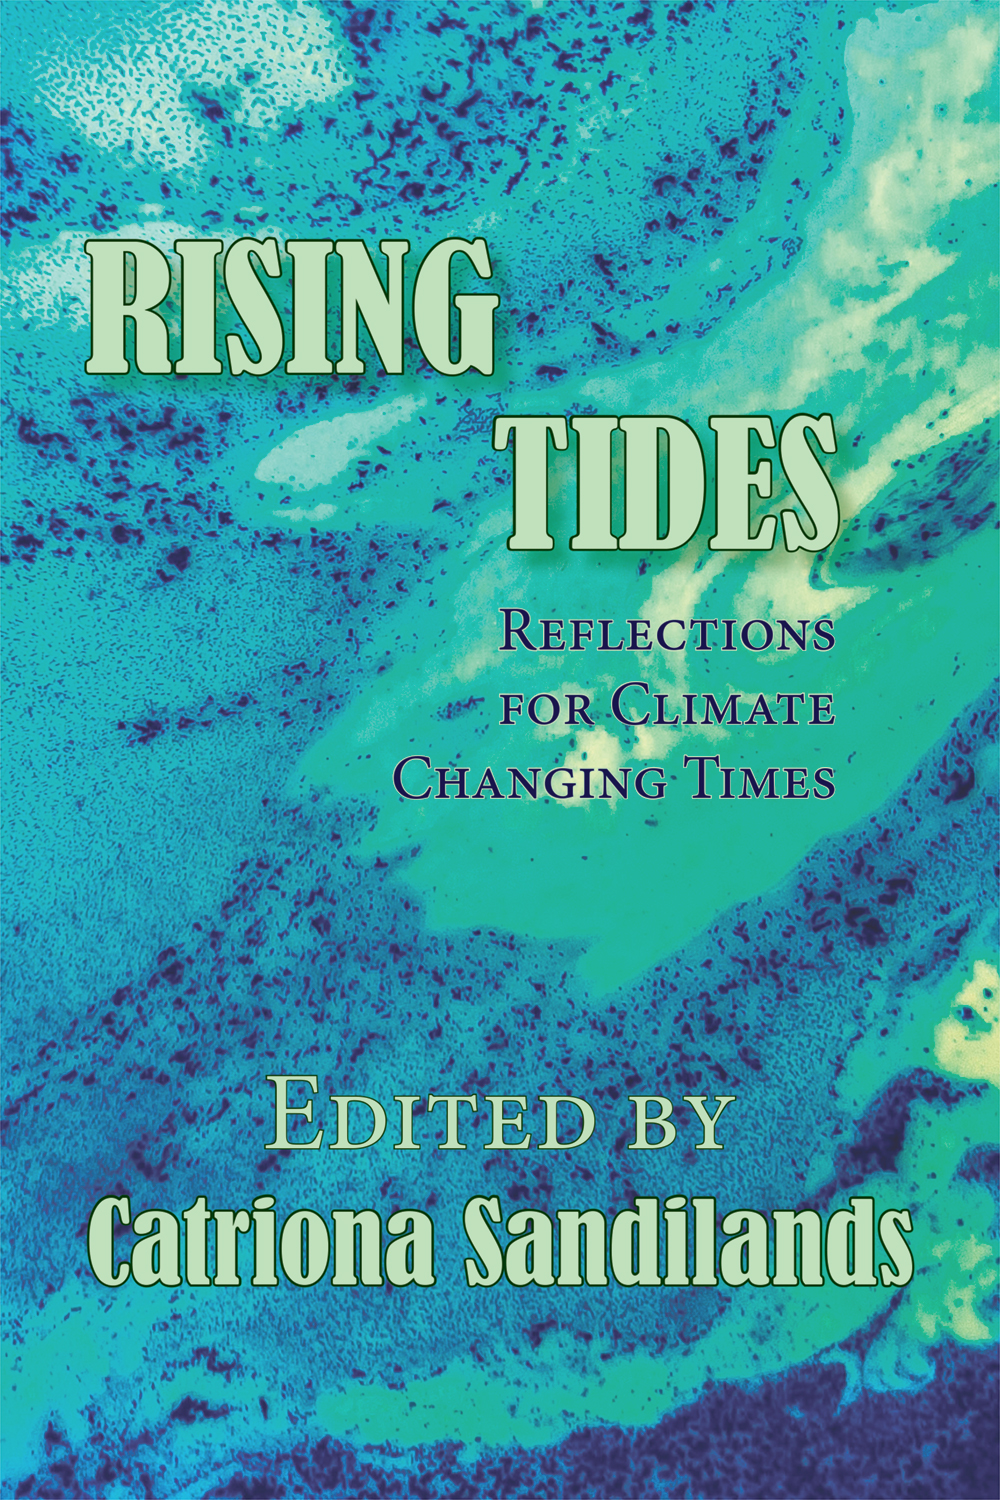 Rising Tides: Reflections for Climate Changing Times